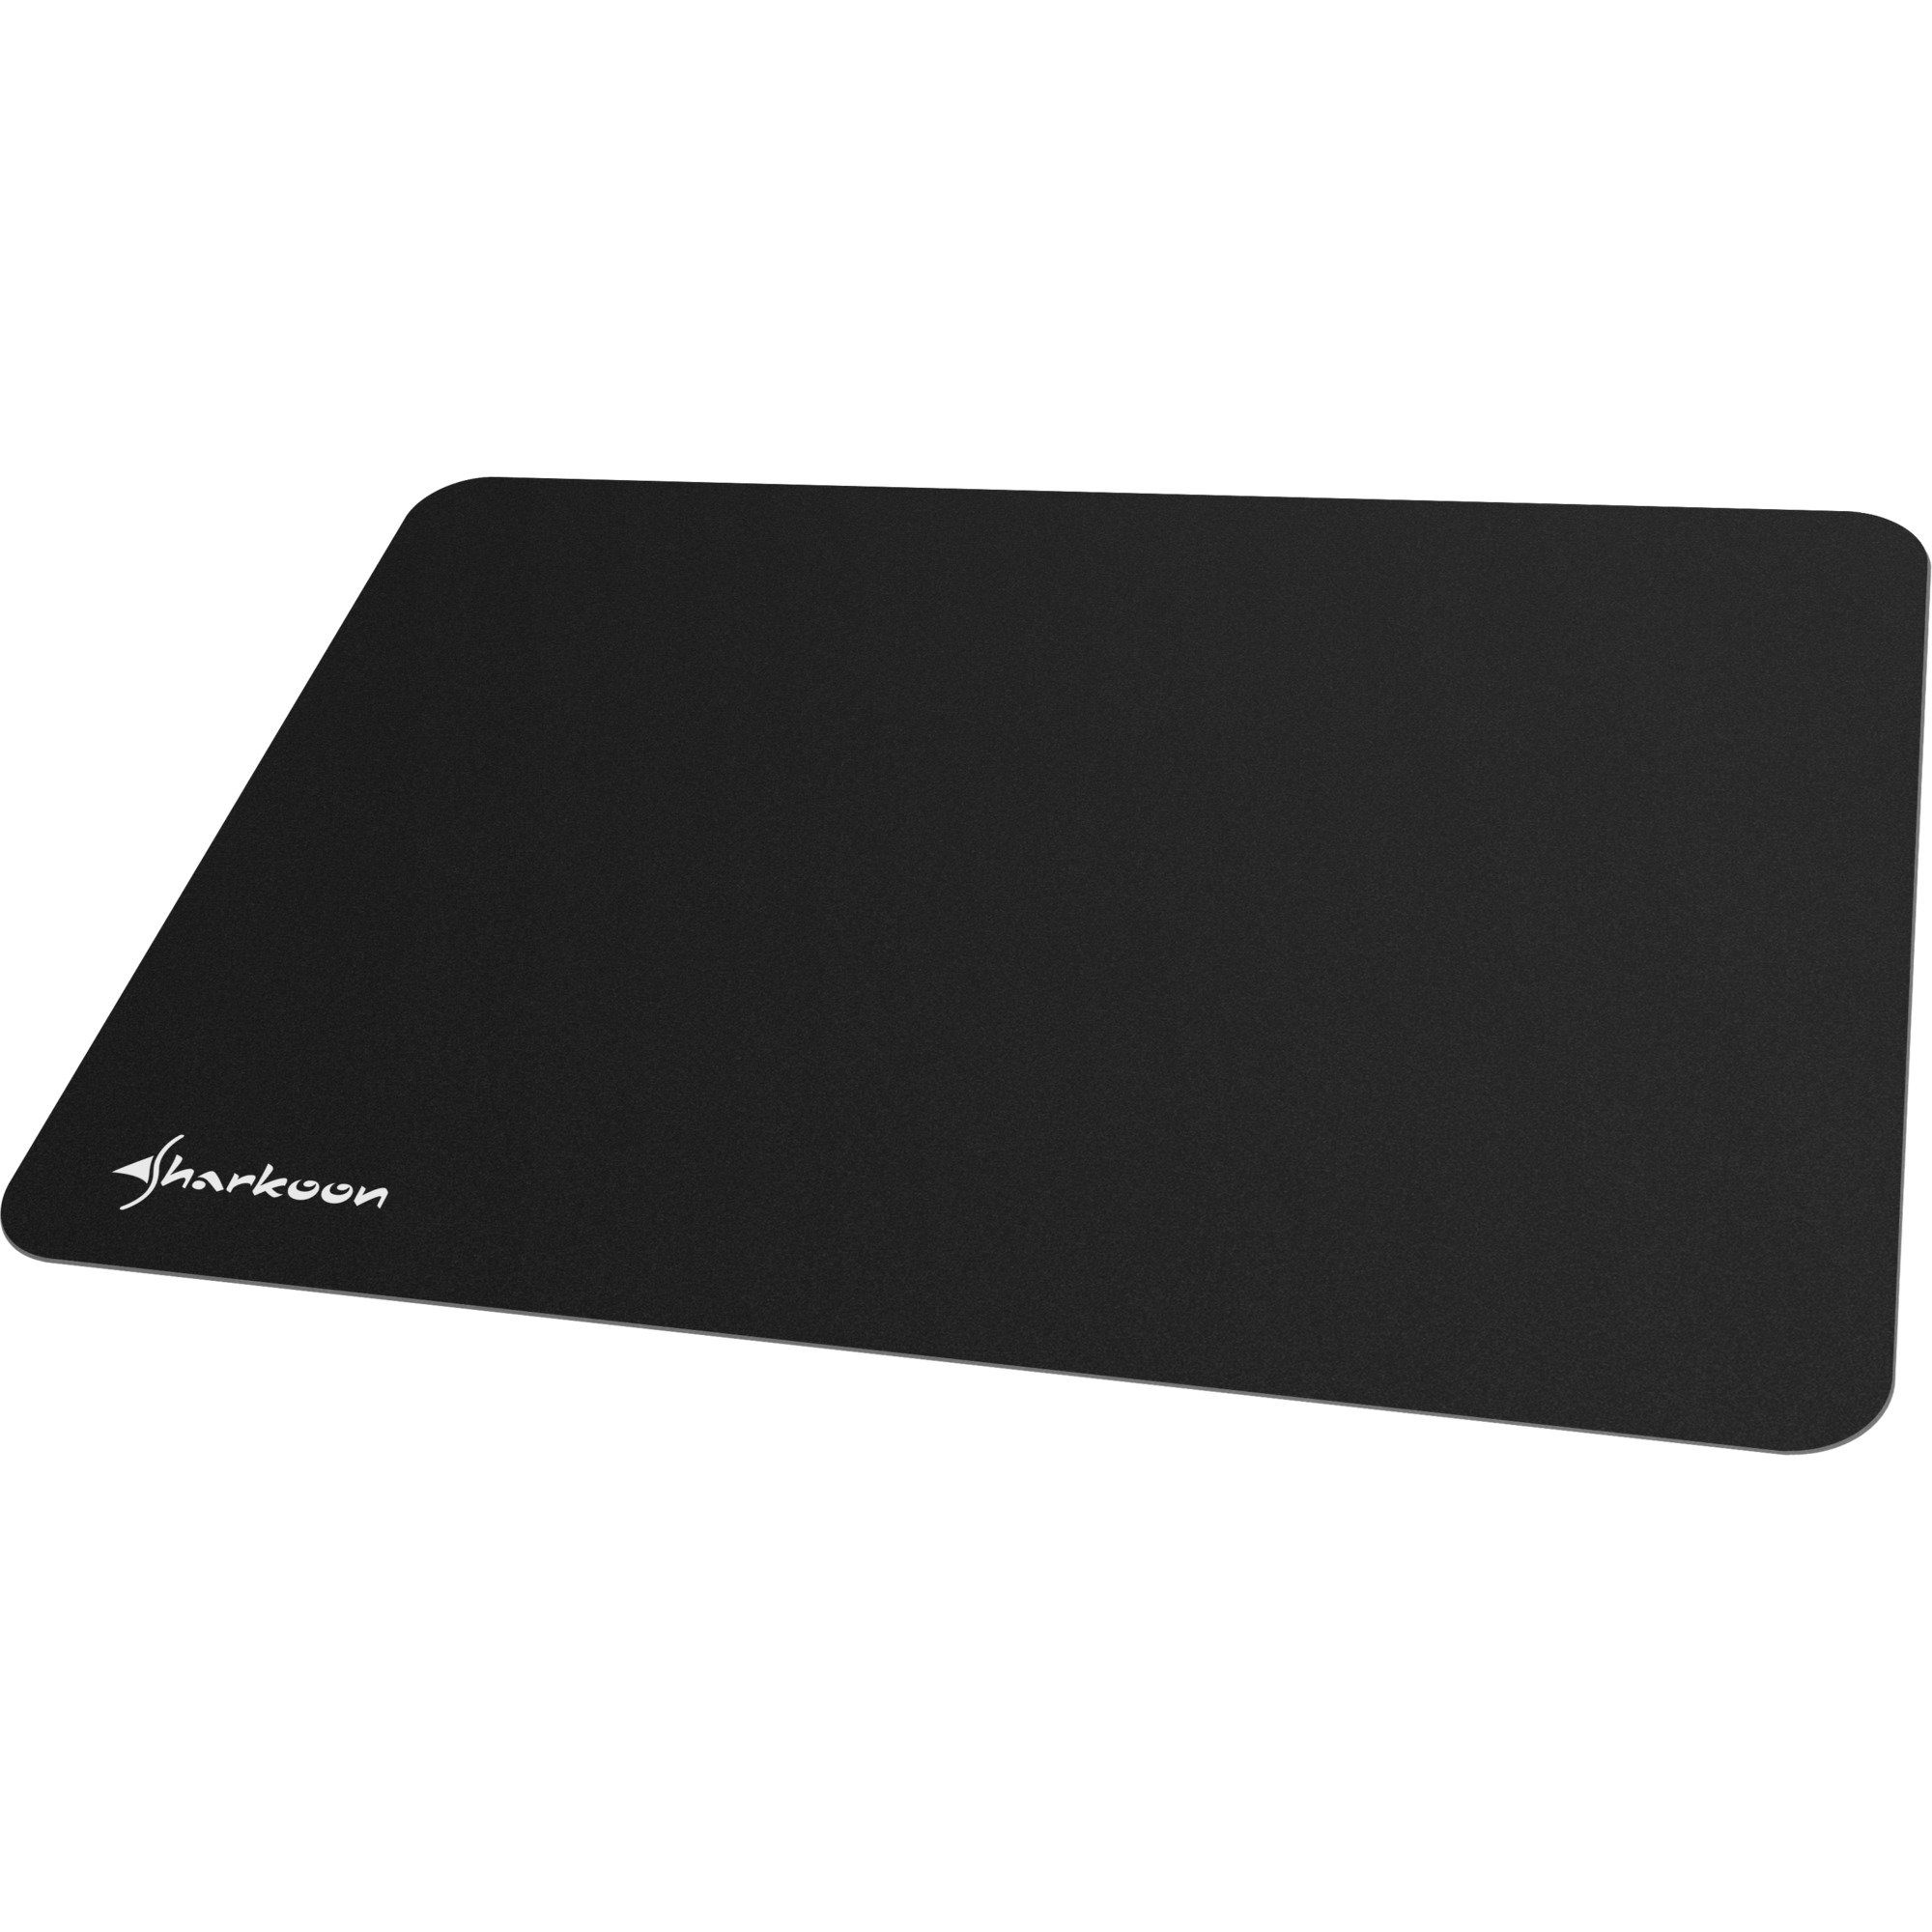 "Sharkoon Mauspad »1337 Gaming Mat ""Black"" L«"